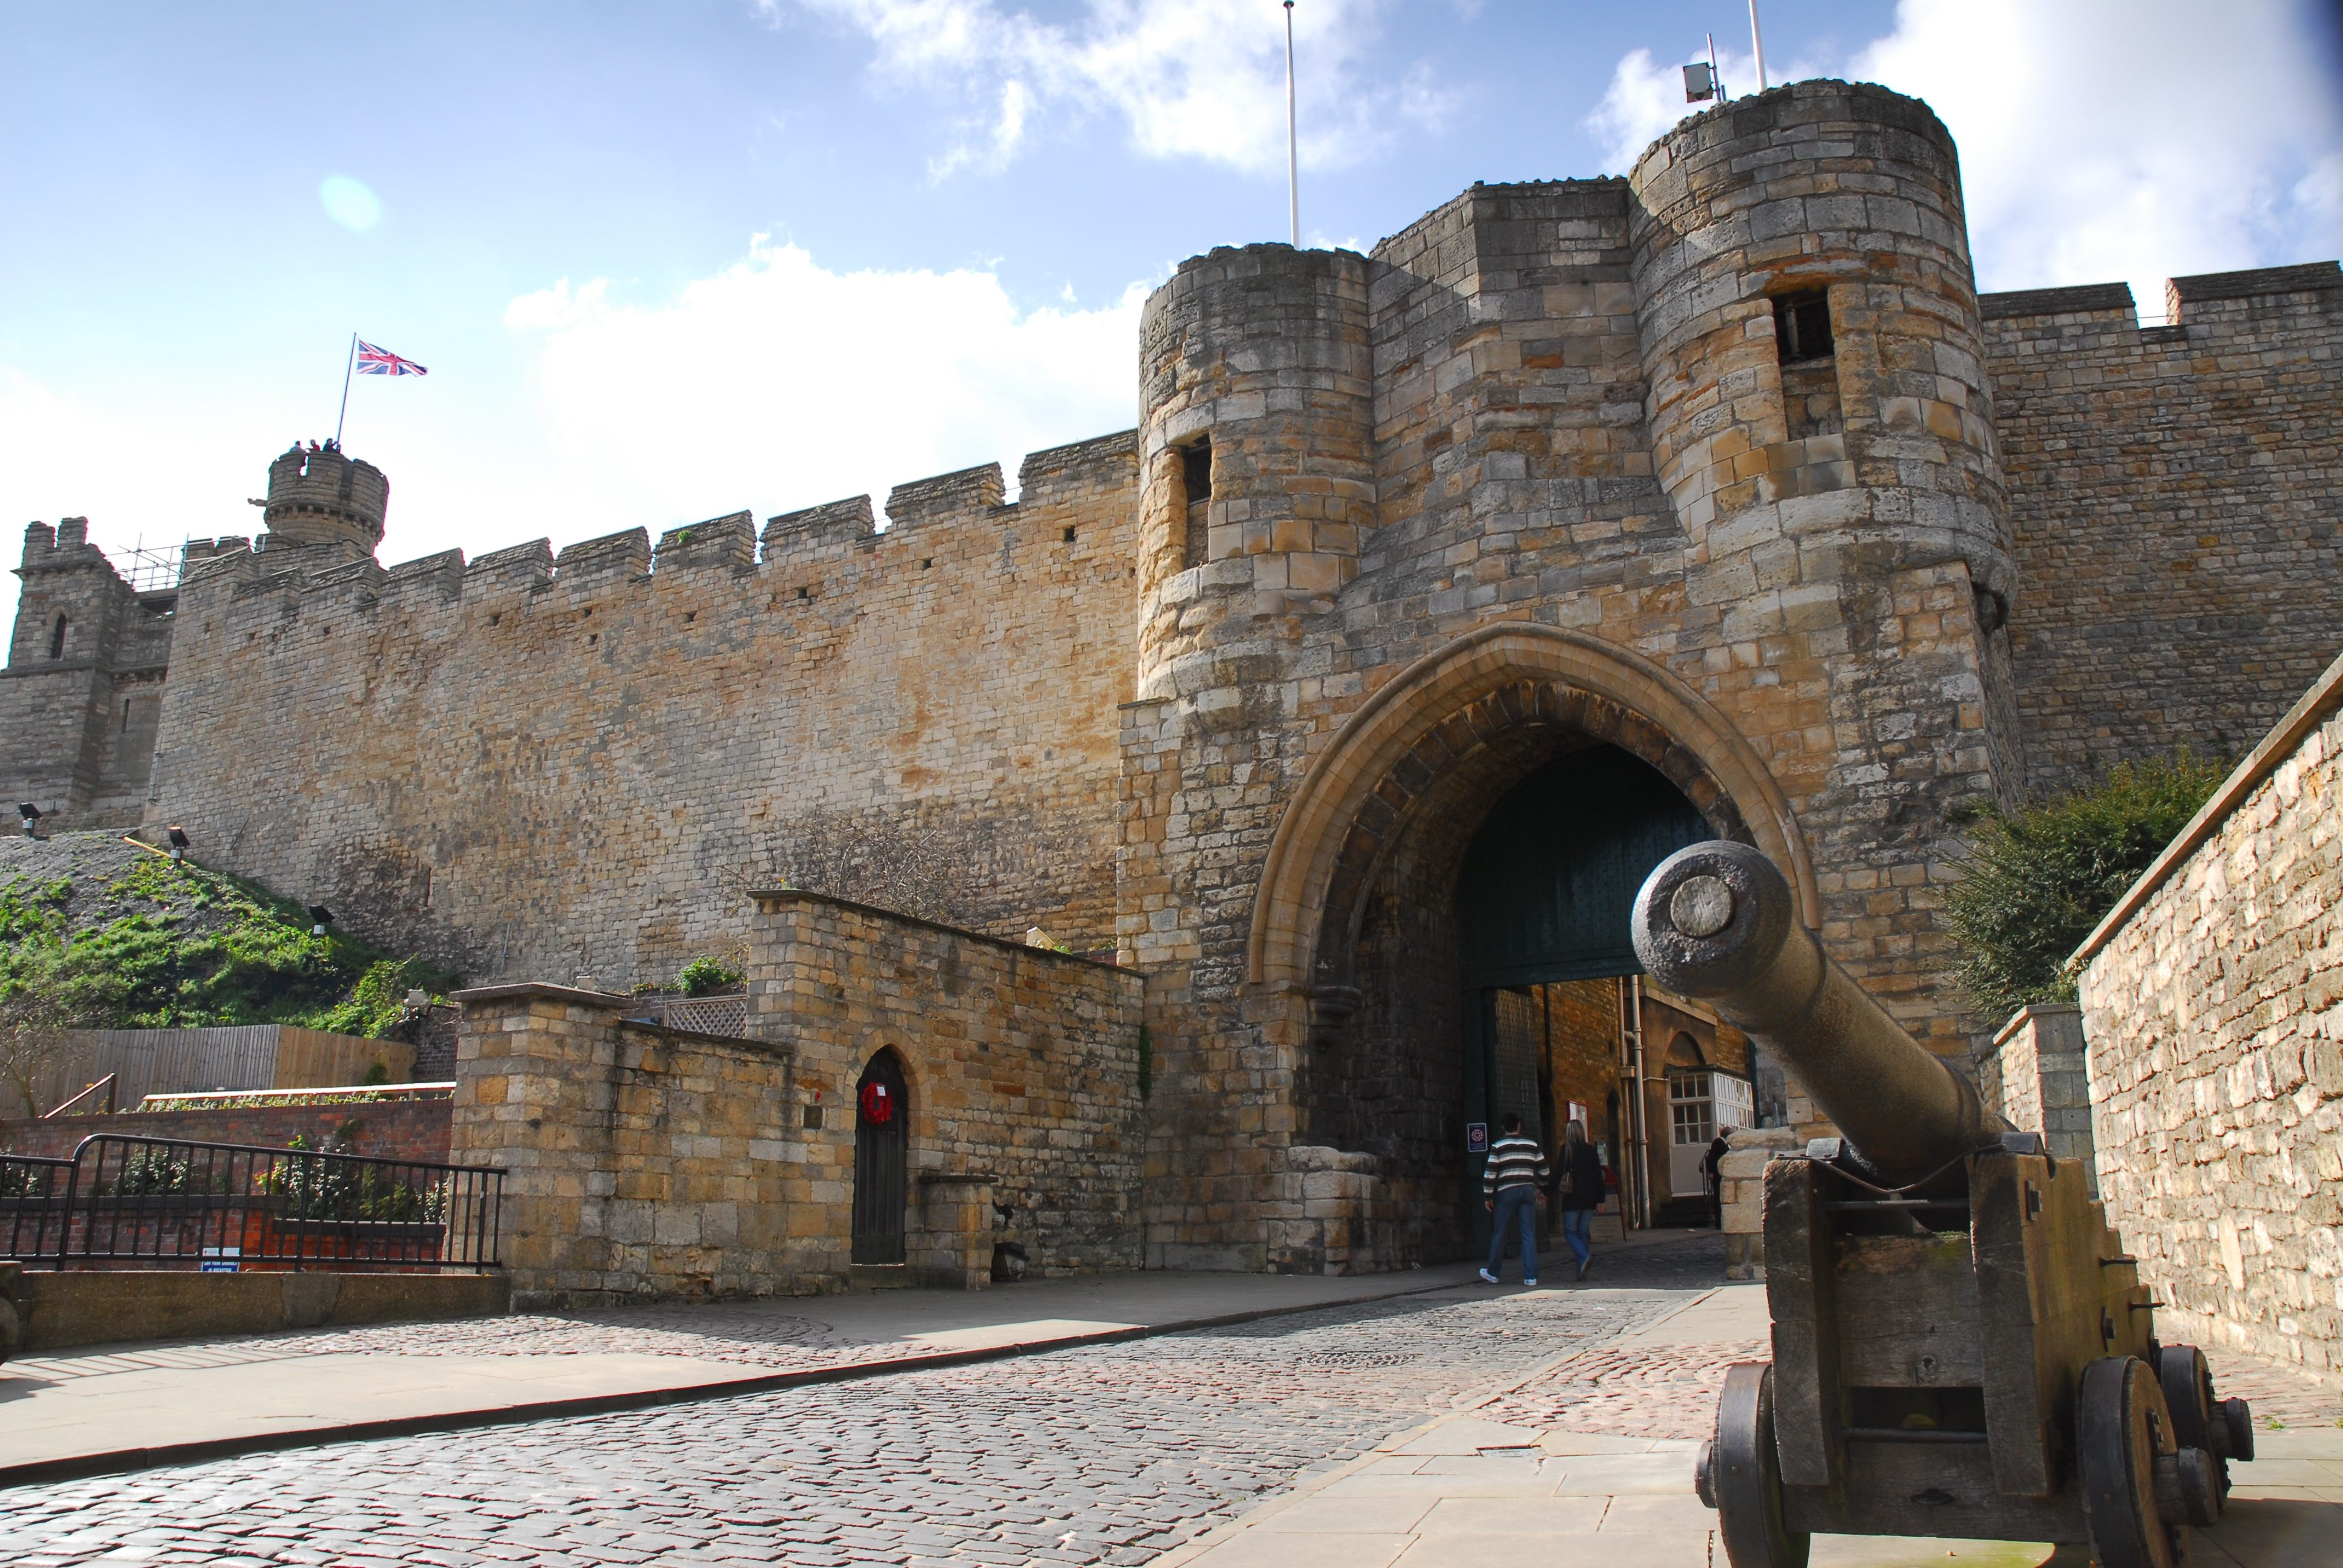 Lincoln Castle, where the Magna Carta manuscript belonging to Lincoln Cathedral to go on display in the newly-built Magna Carta Vault after the unification event.